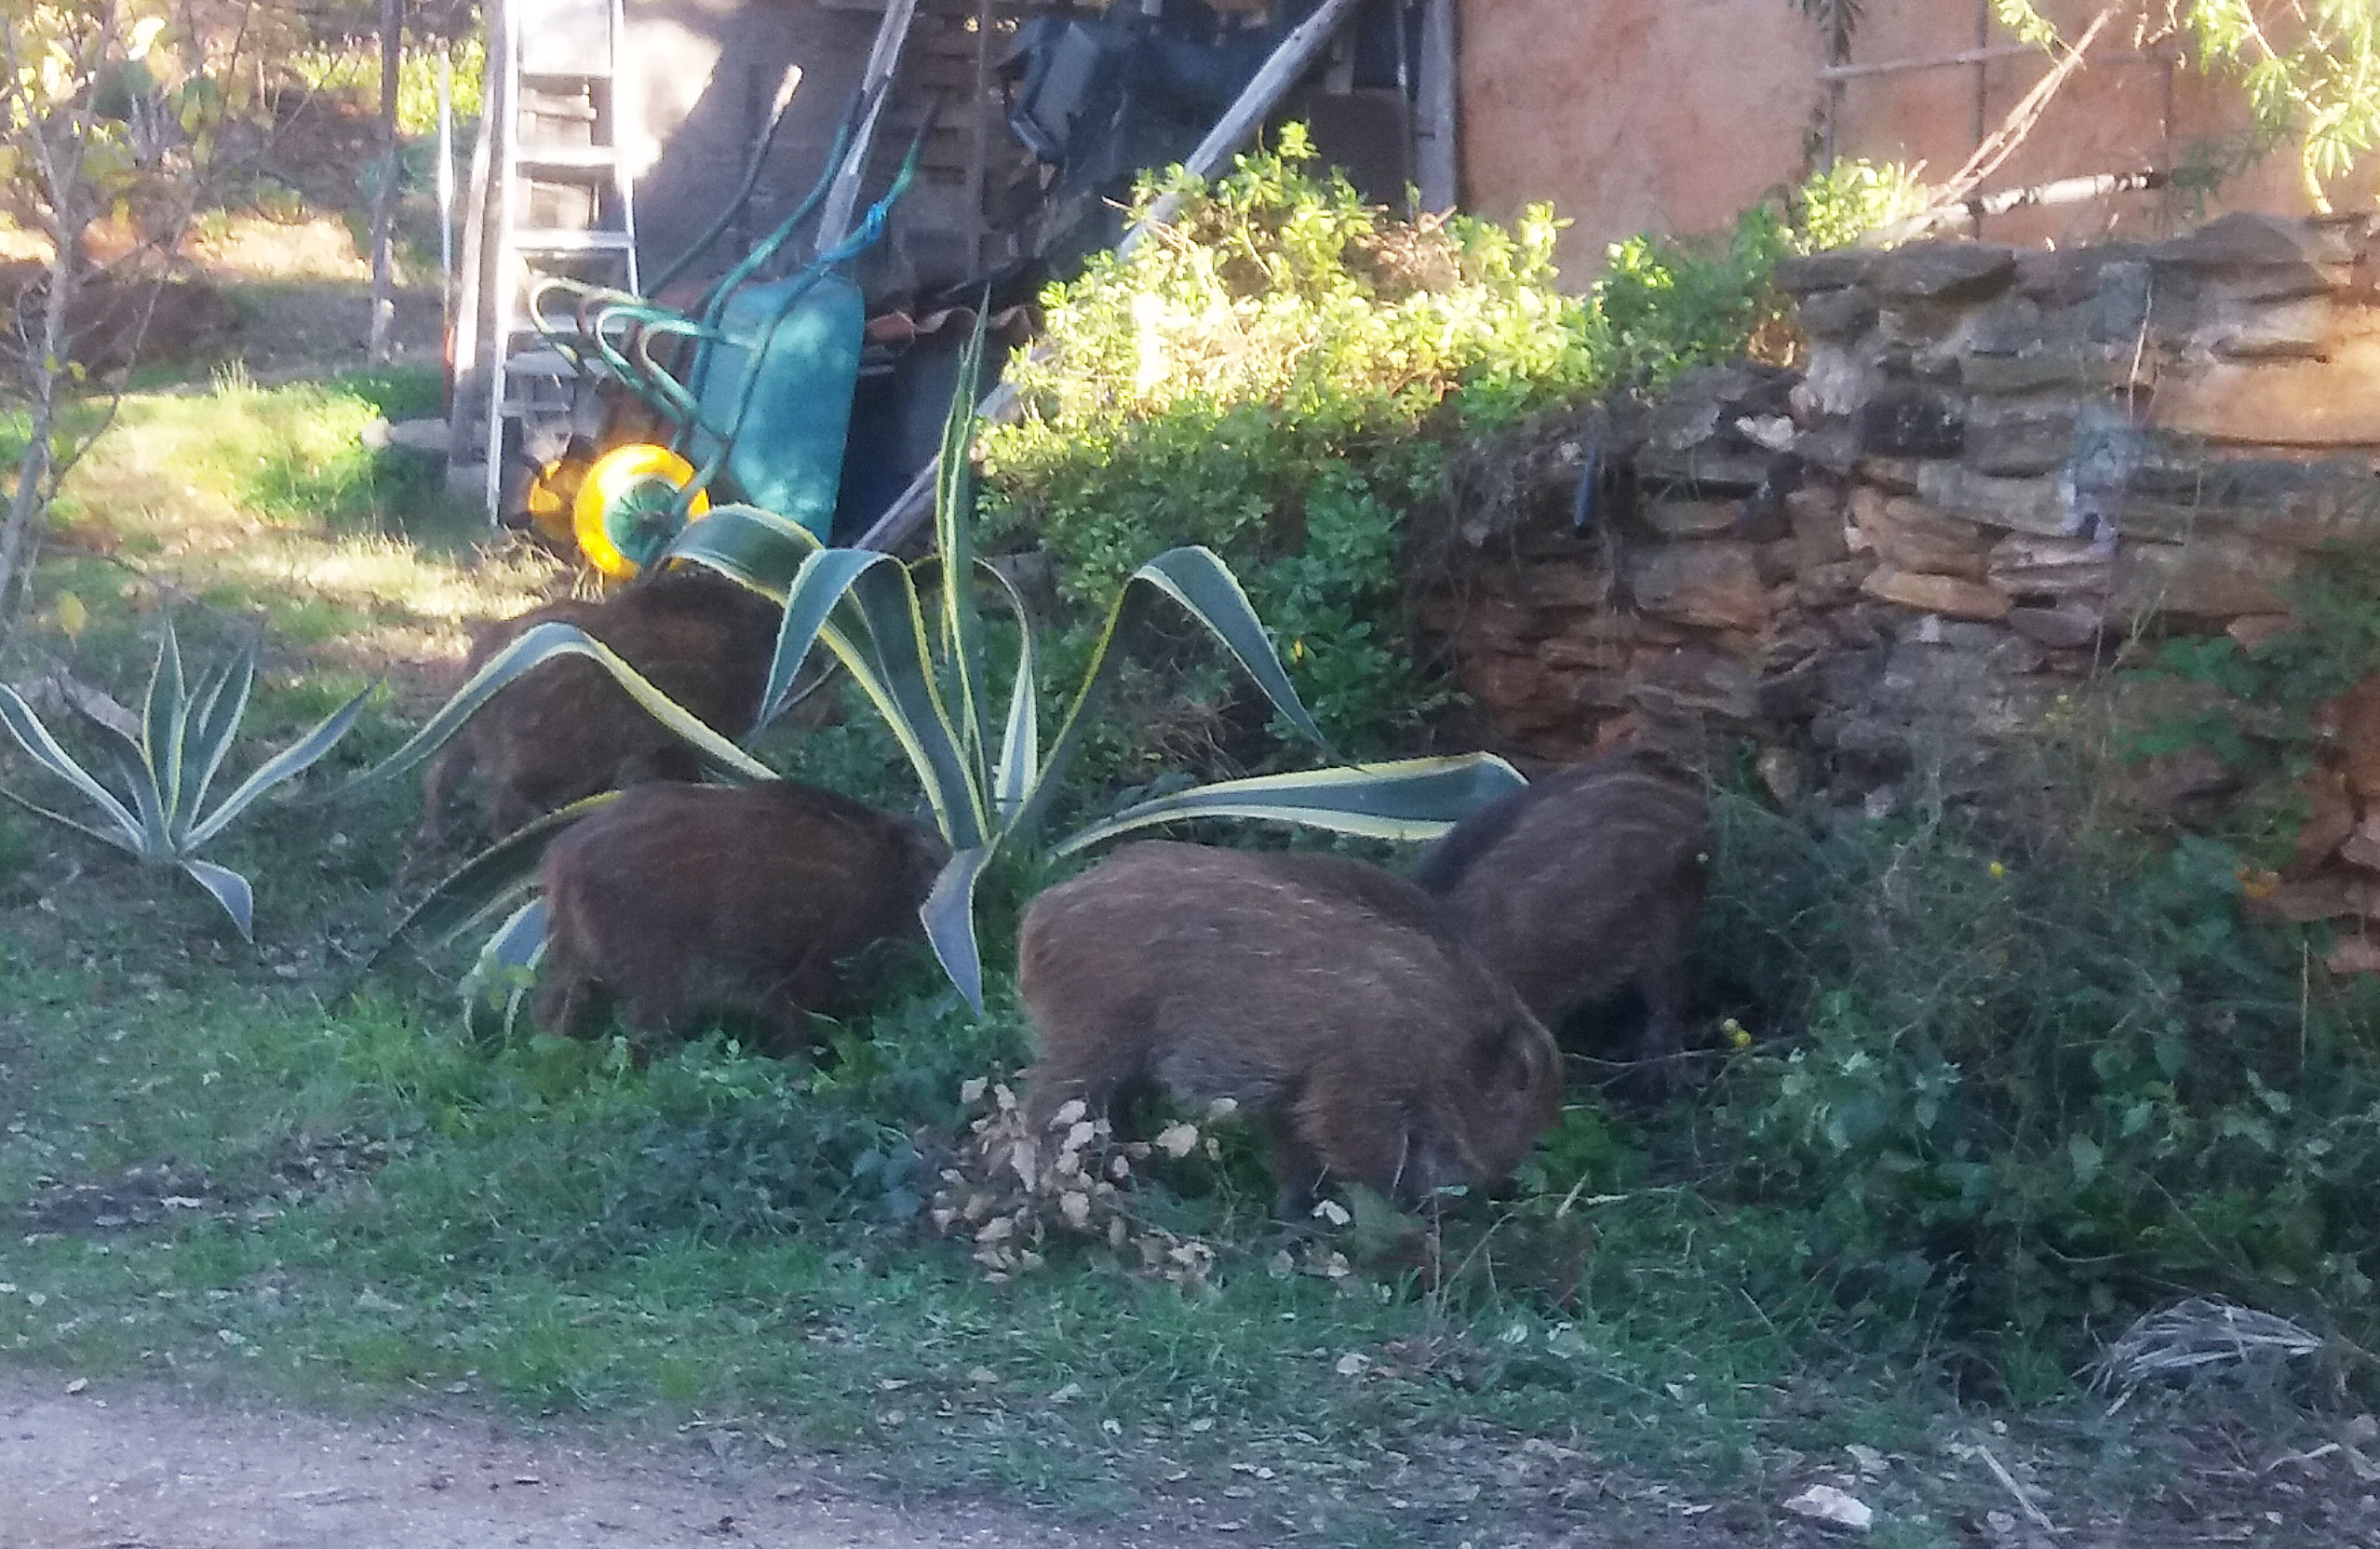 Wildboars Visiting Our Living Spaces